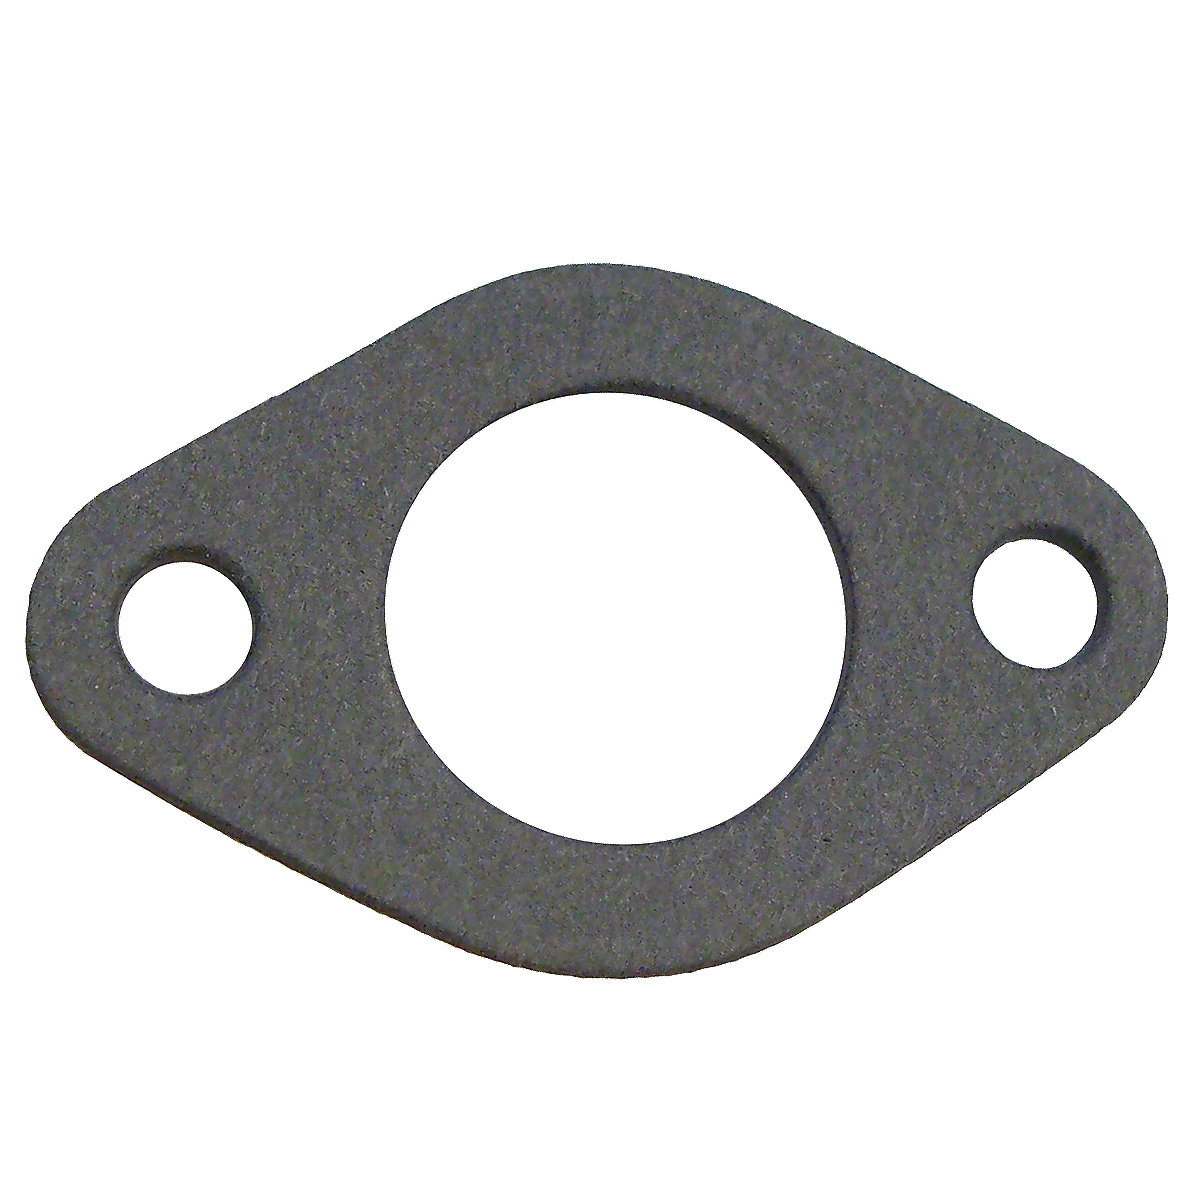 Carburetor To Mainfold Mounting Gasket For Allis Chalmers: G